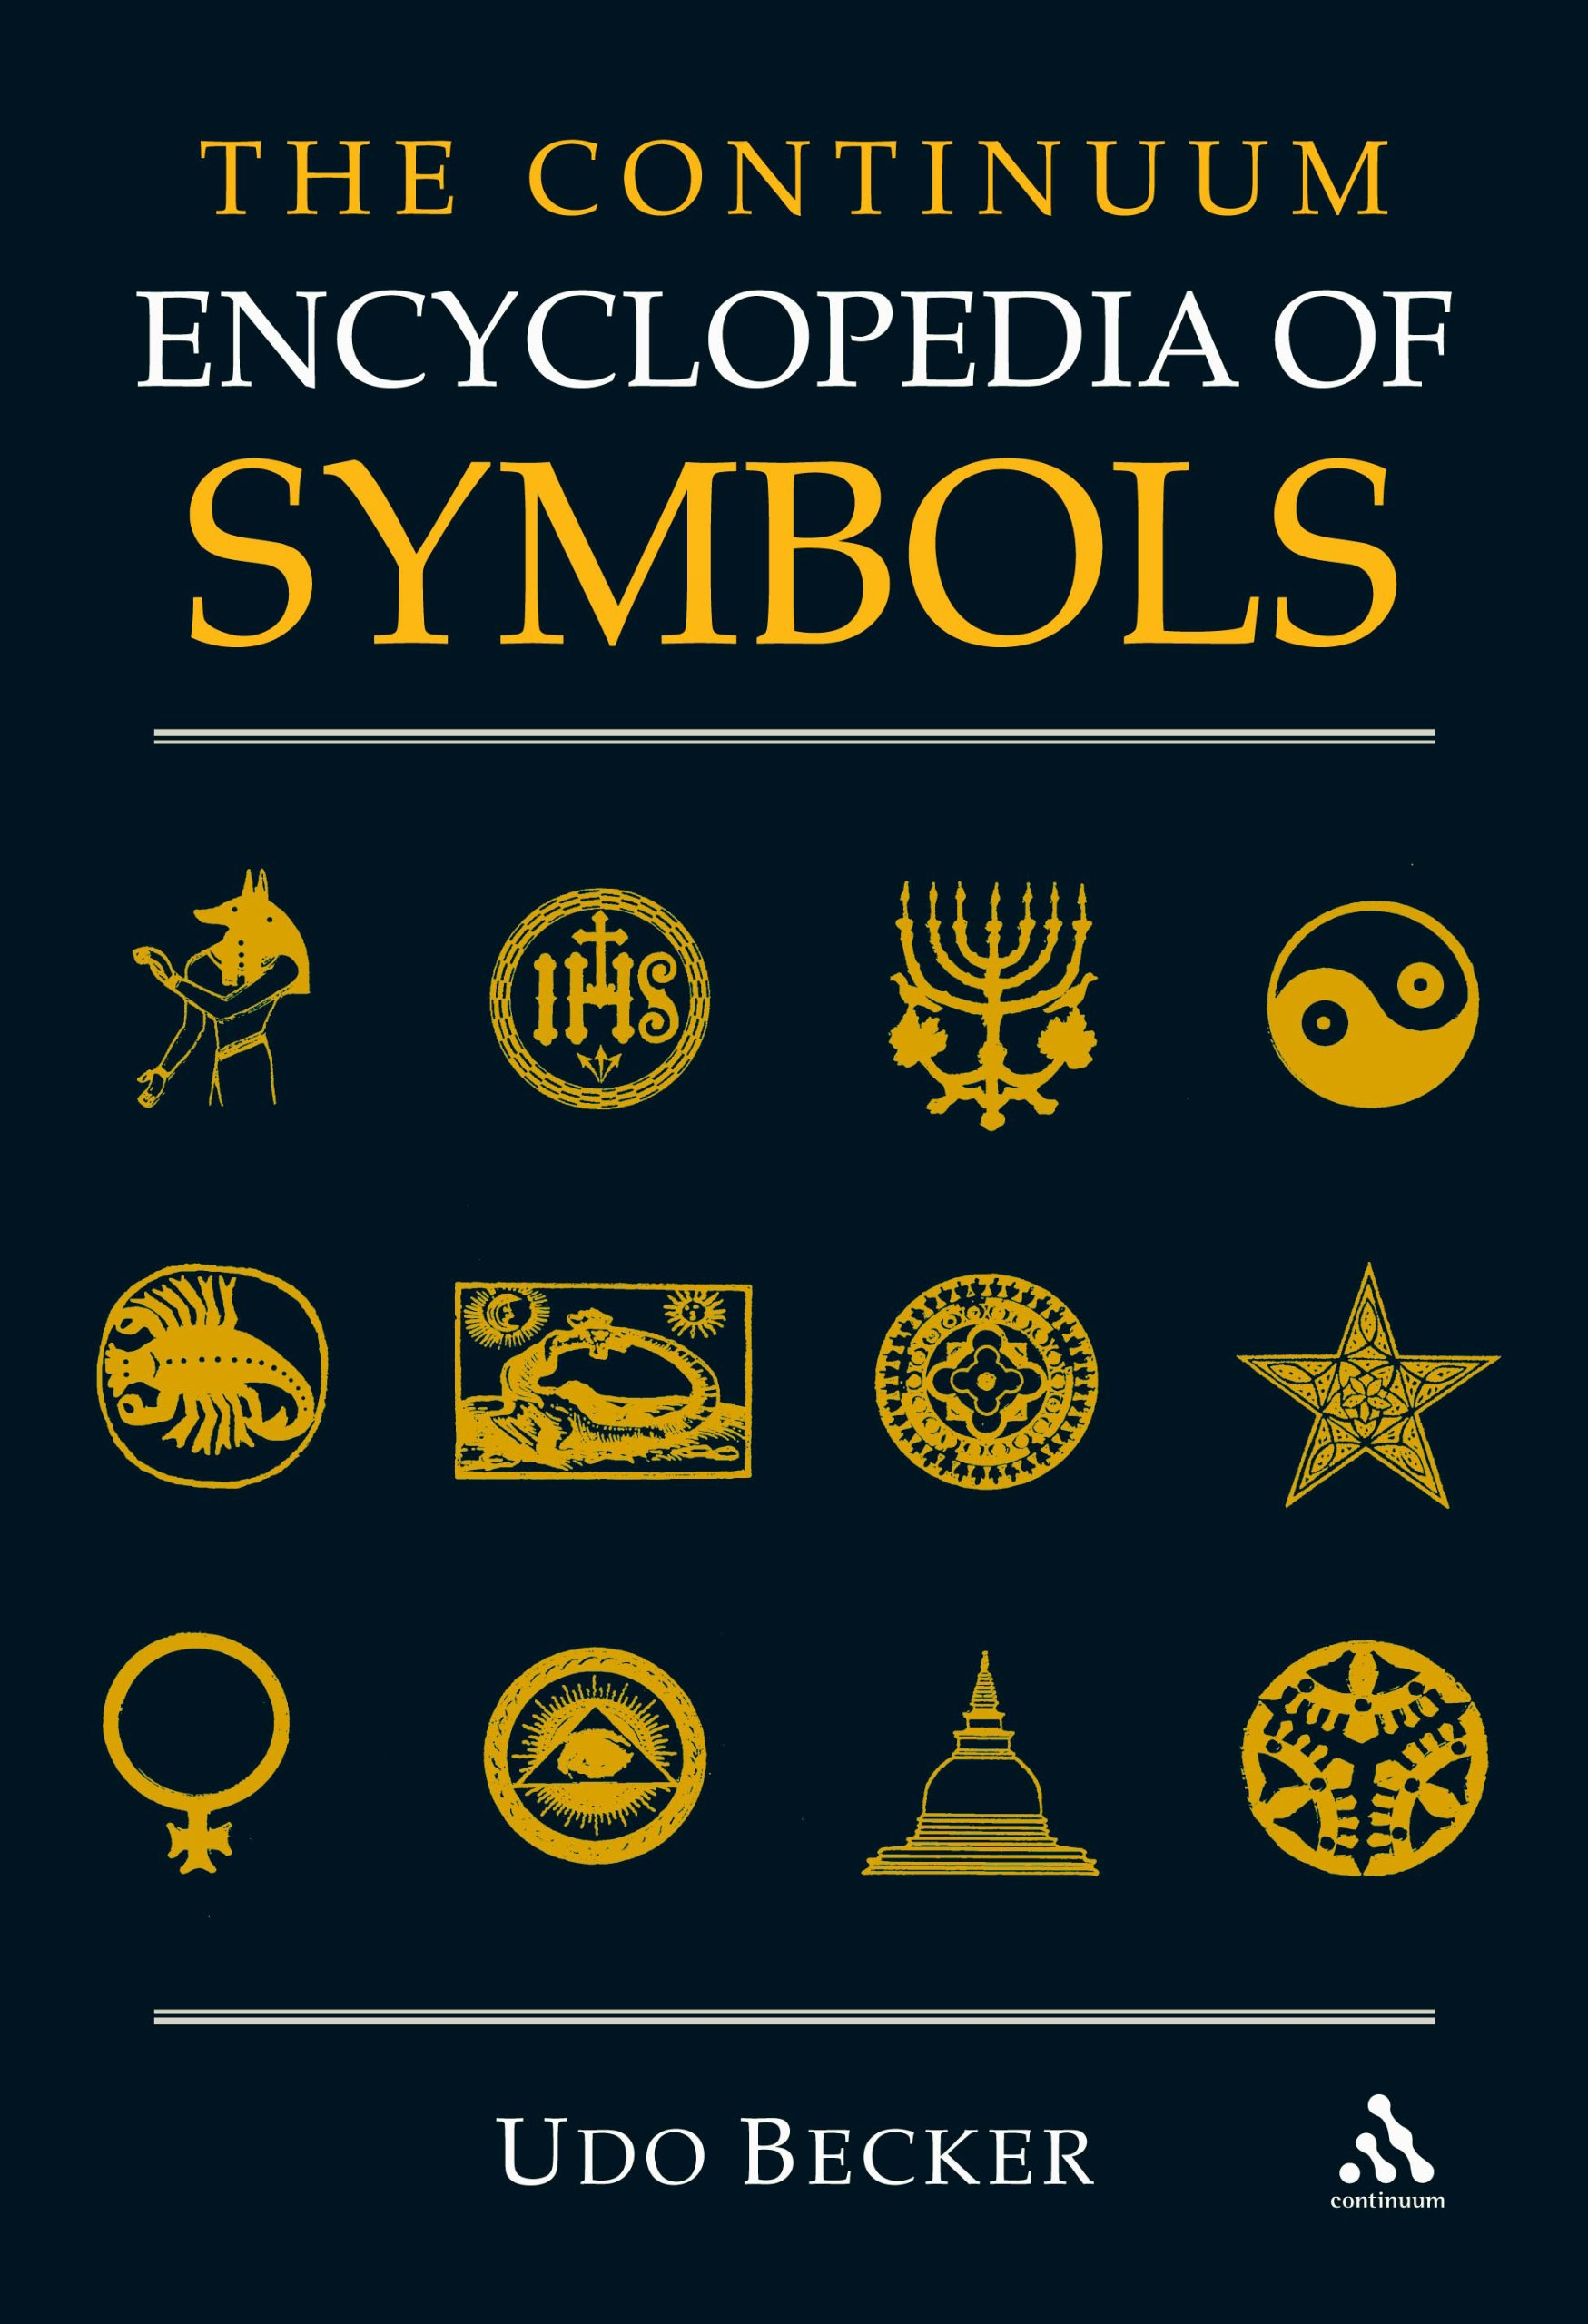 Continuum encyclopedia of symbols udo becker 9780826412218 continuum encyclopedia of symbols udo becker 9780826412218 amazon books buycottarizona Choice Image